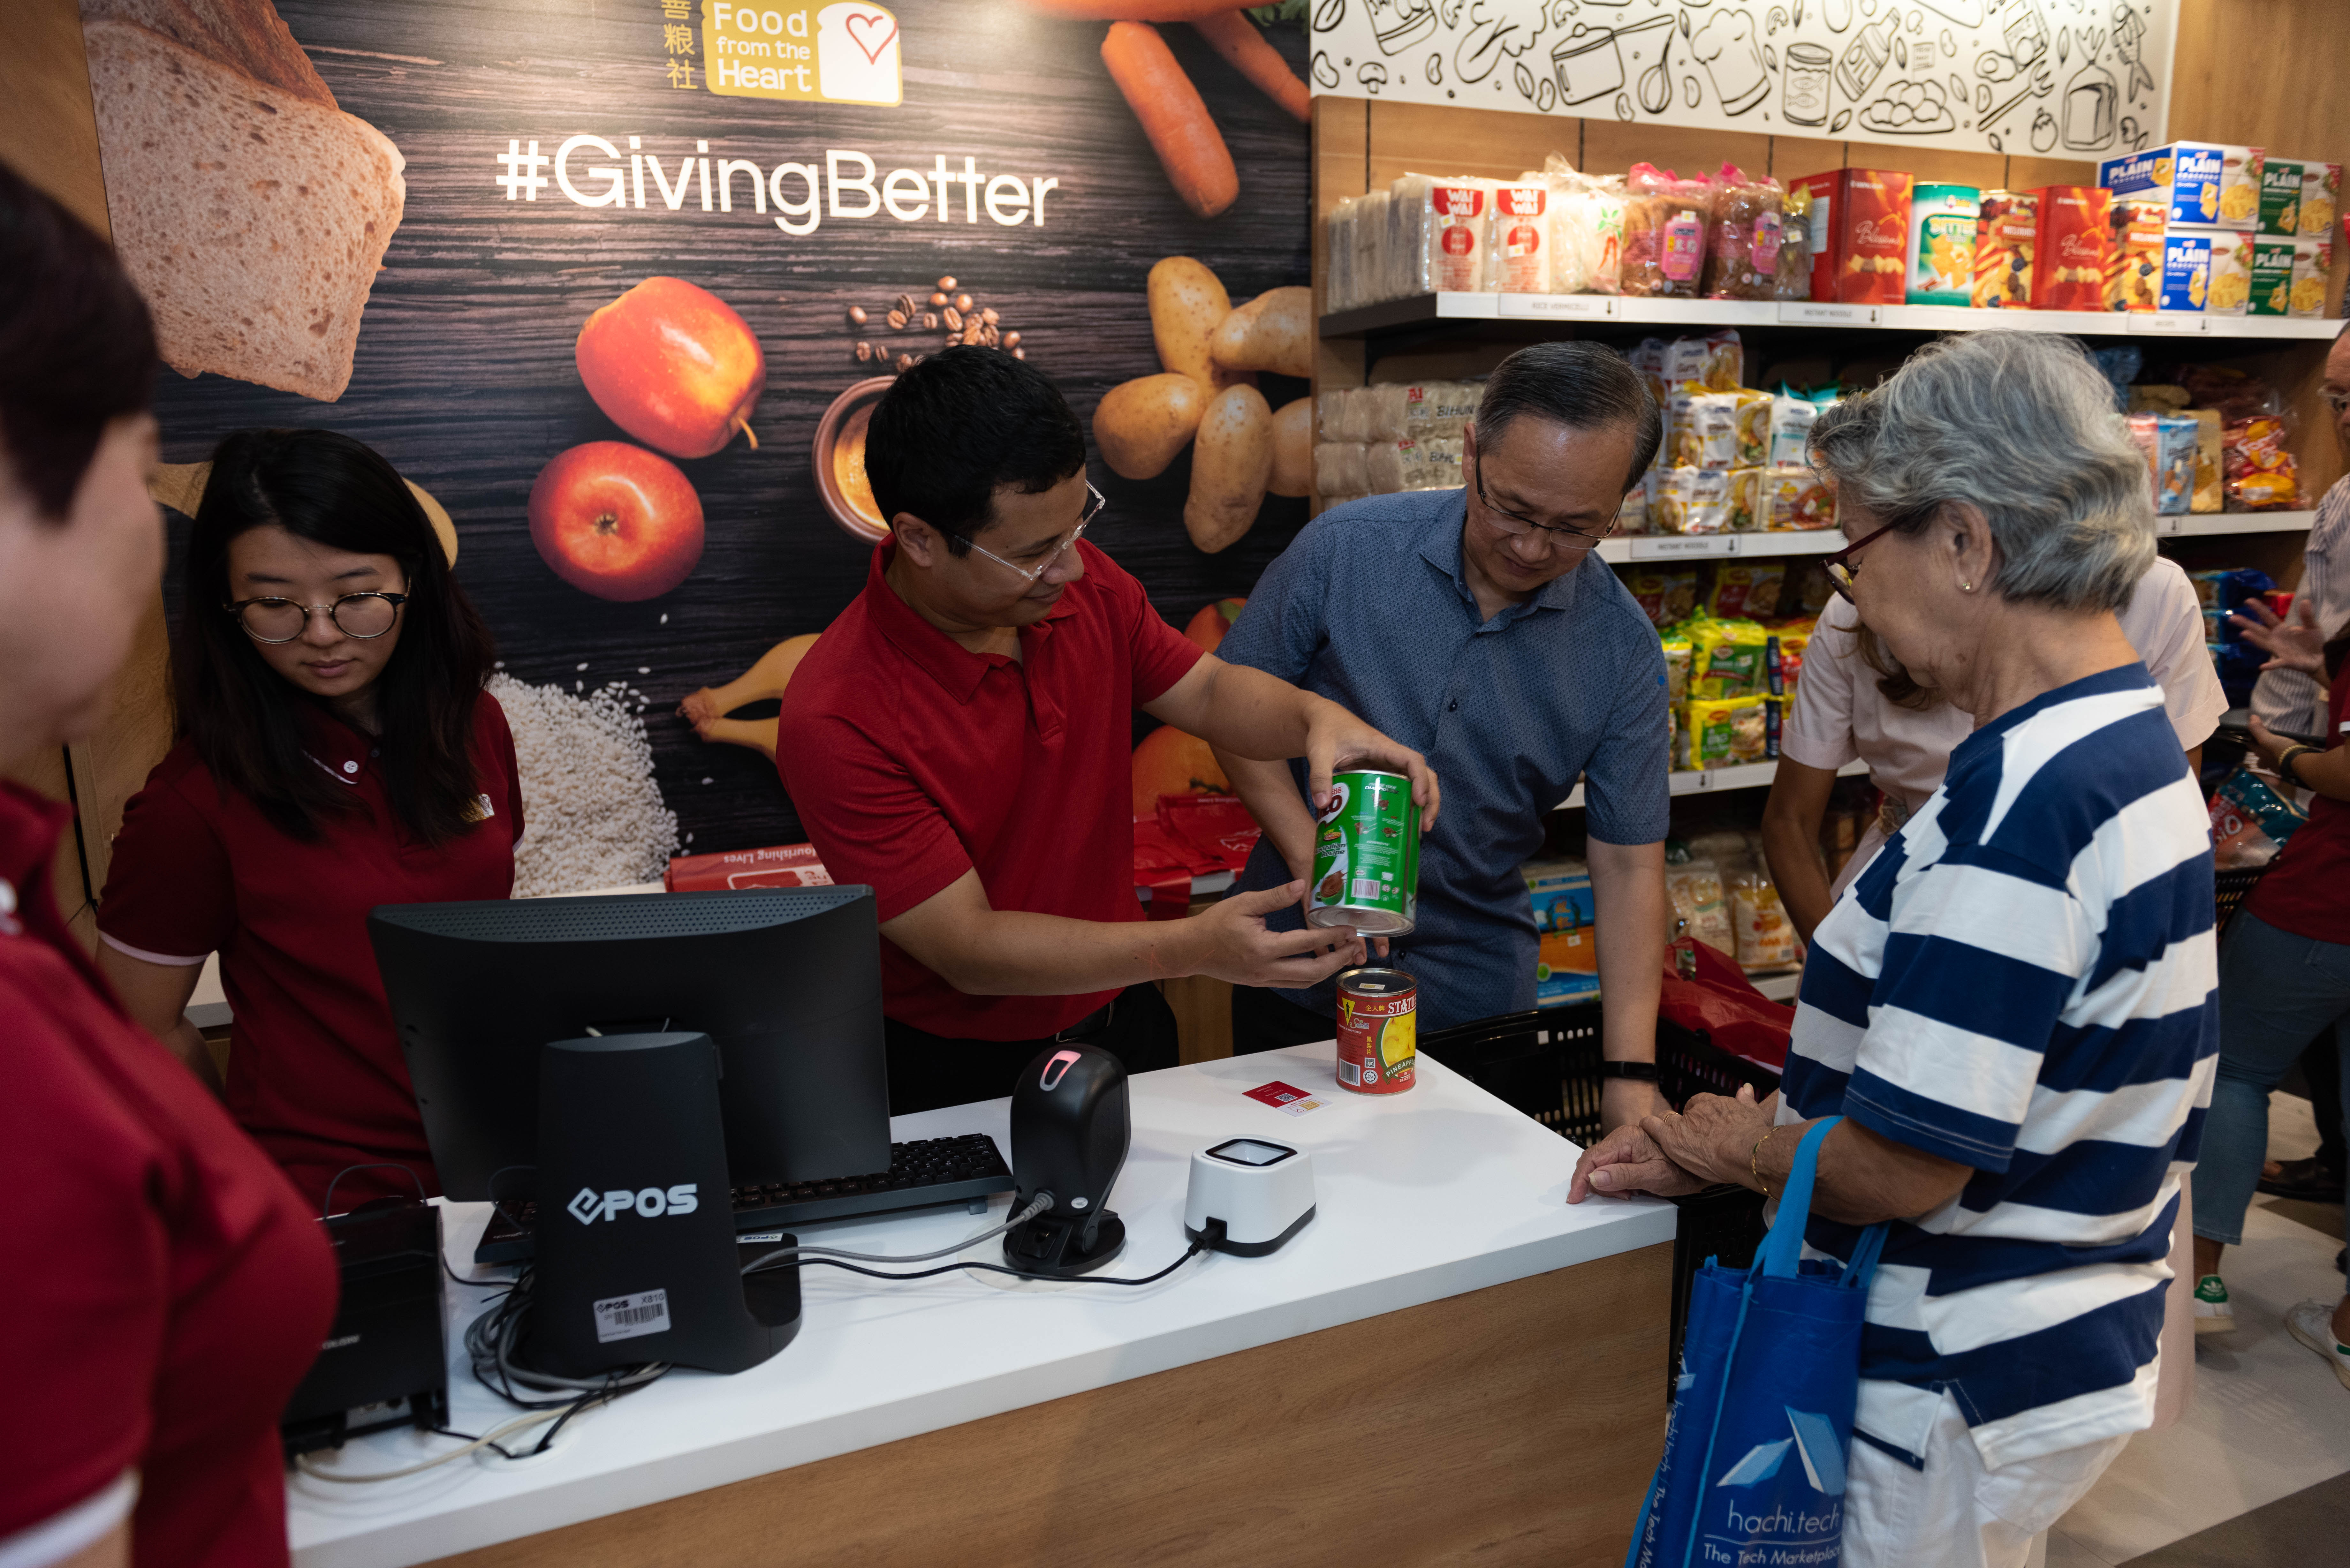 Food from the Heart's First Community Shop @ Mountbatten - A #GivingBetter Initiative